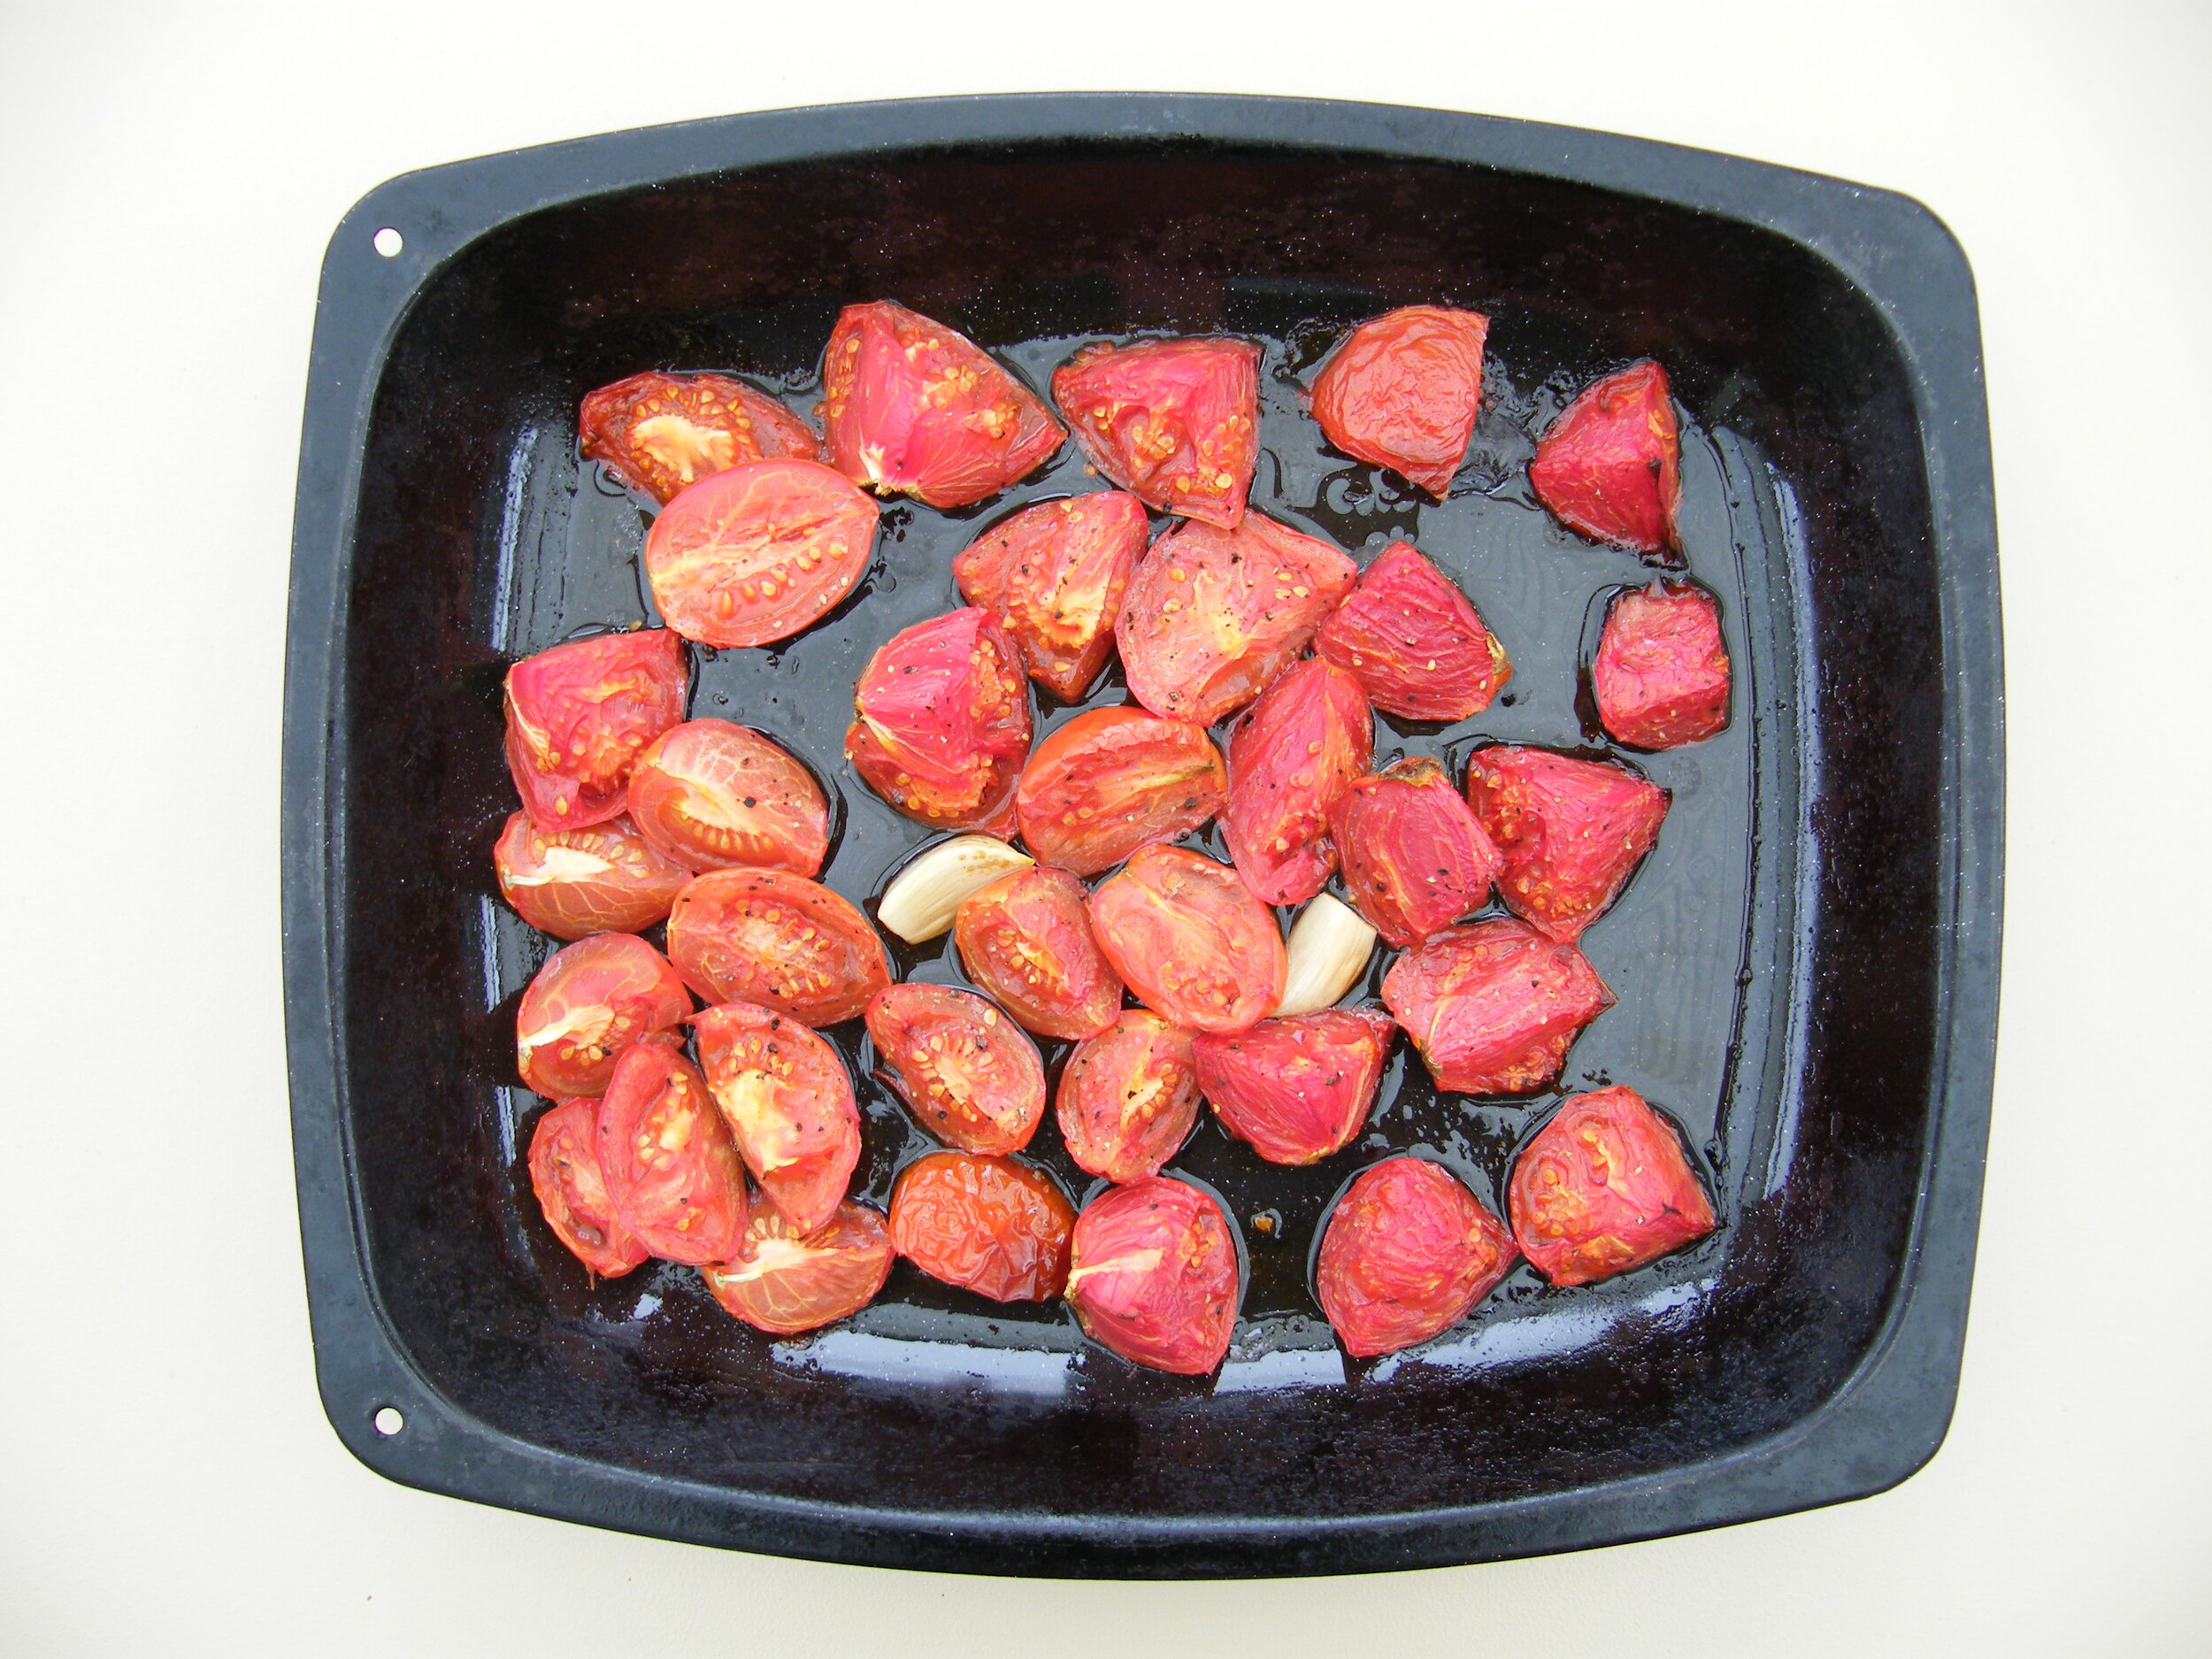 Roast 750g of roughly chopped tomatoes with two peeled garlic cloves in olive oil for 40 minutes at 180 degrees C.